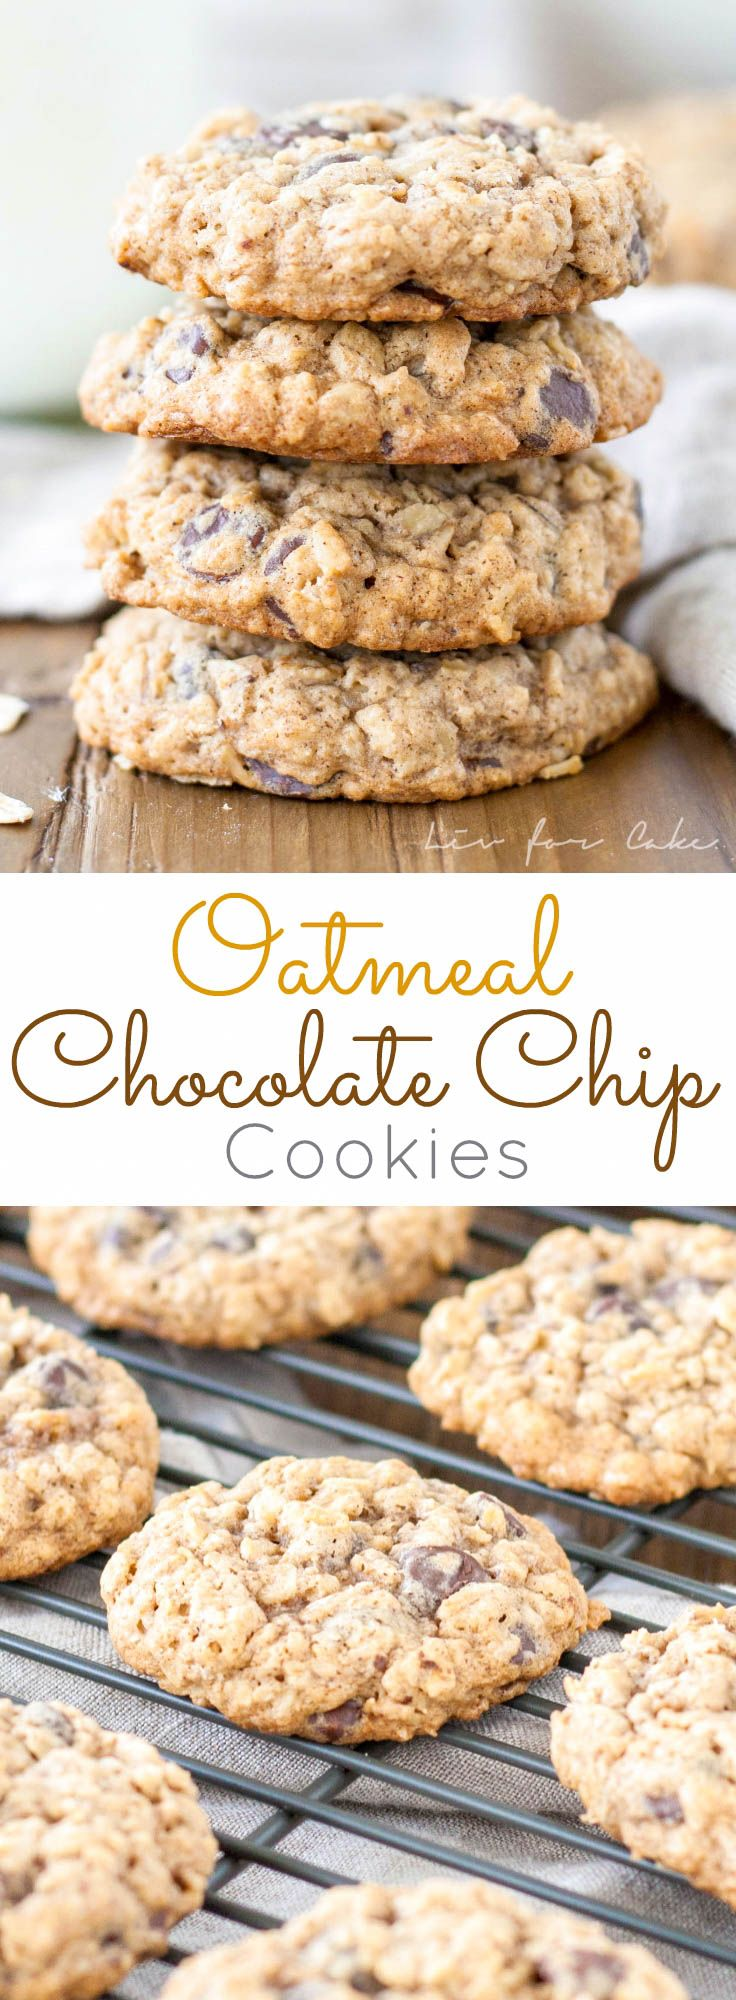 Soft and chewy oatmeal chocolate chip cookies | livforcake.com